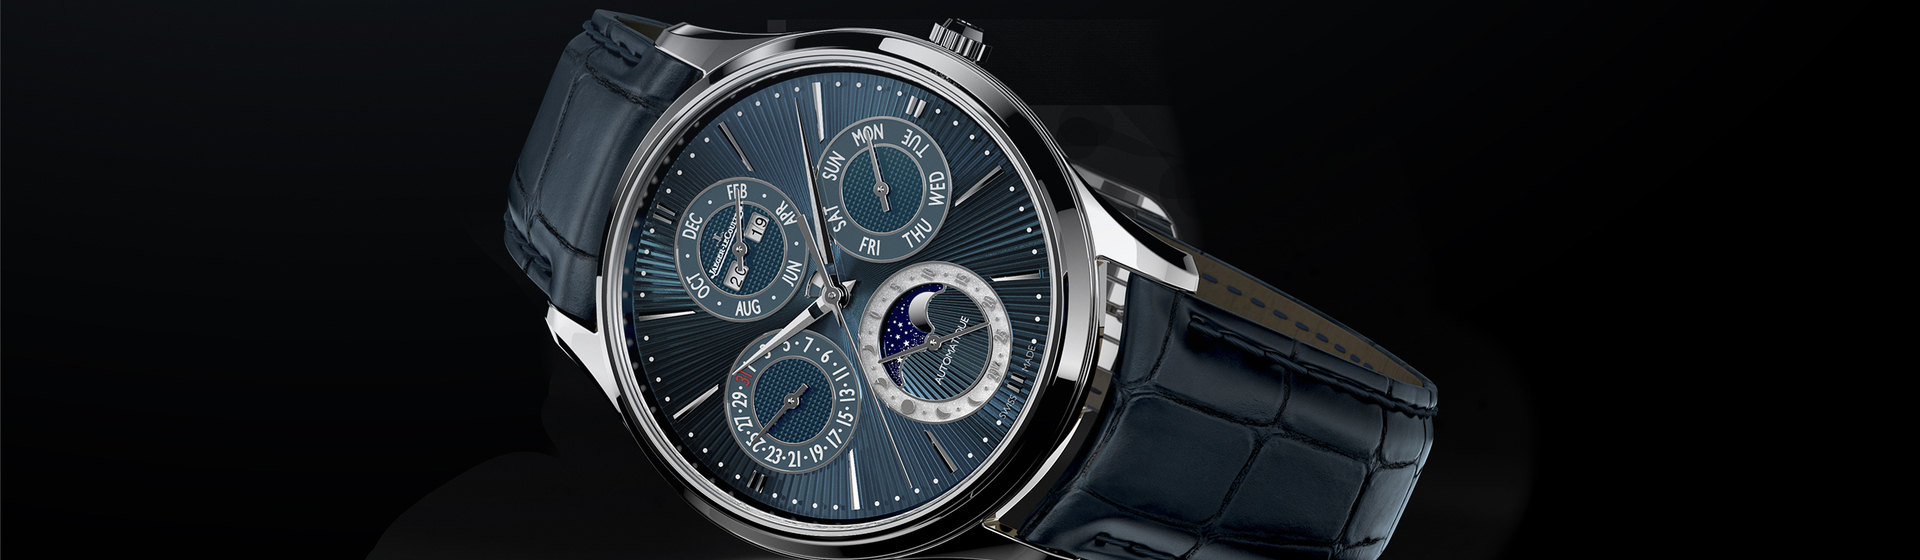 2019-01_Jaeger-LeCoultre - Master Ultra Thin Perpetual Enamel_1920x560